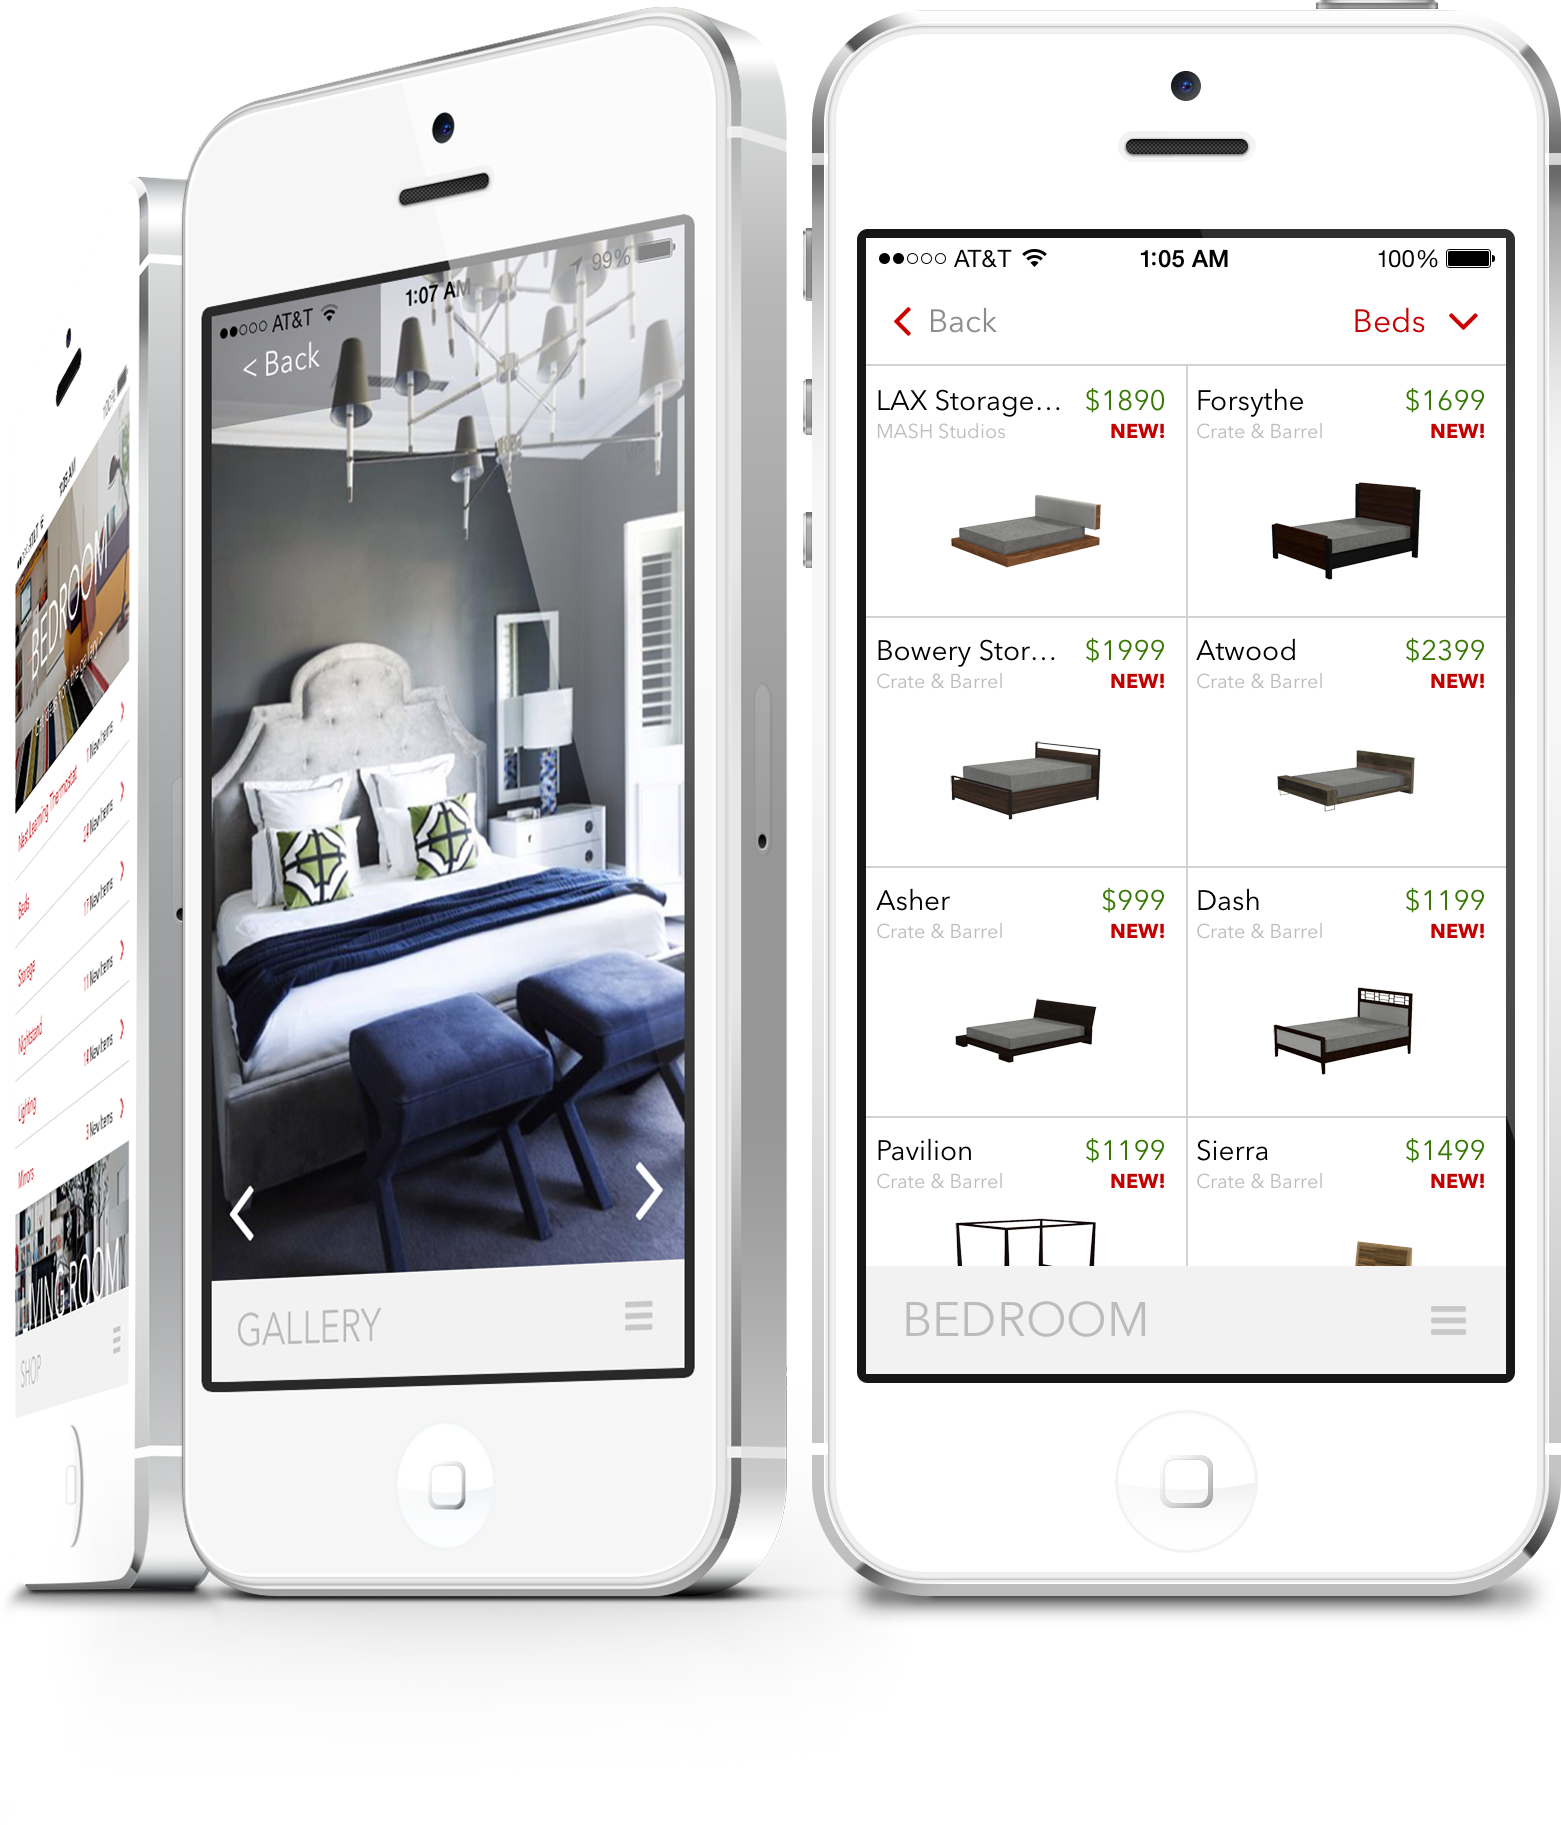 66 Interior Design Software Iphone Best Iphone Apps For Interior Design Kitchen Pack